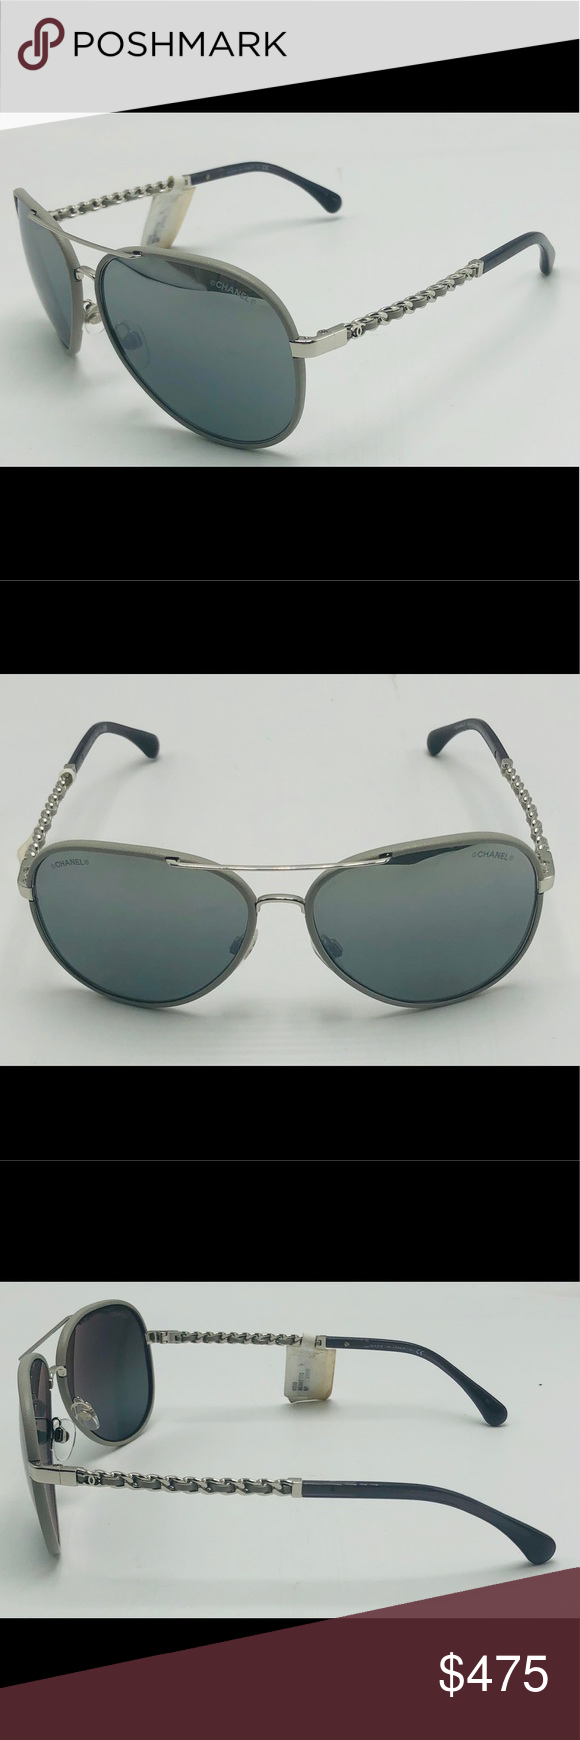 6e9d0bd8dadc NWT CHANEL Pilot Gray Leather Sunglasses 4219-Q Coming CHANEL Accessories  Sunglasses